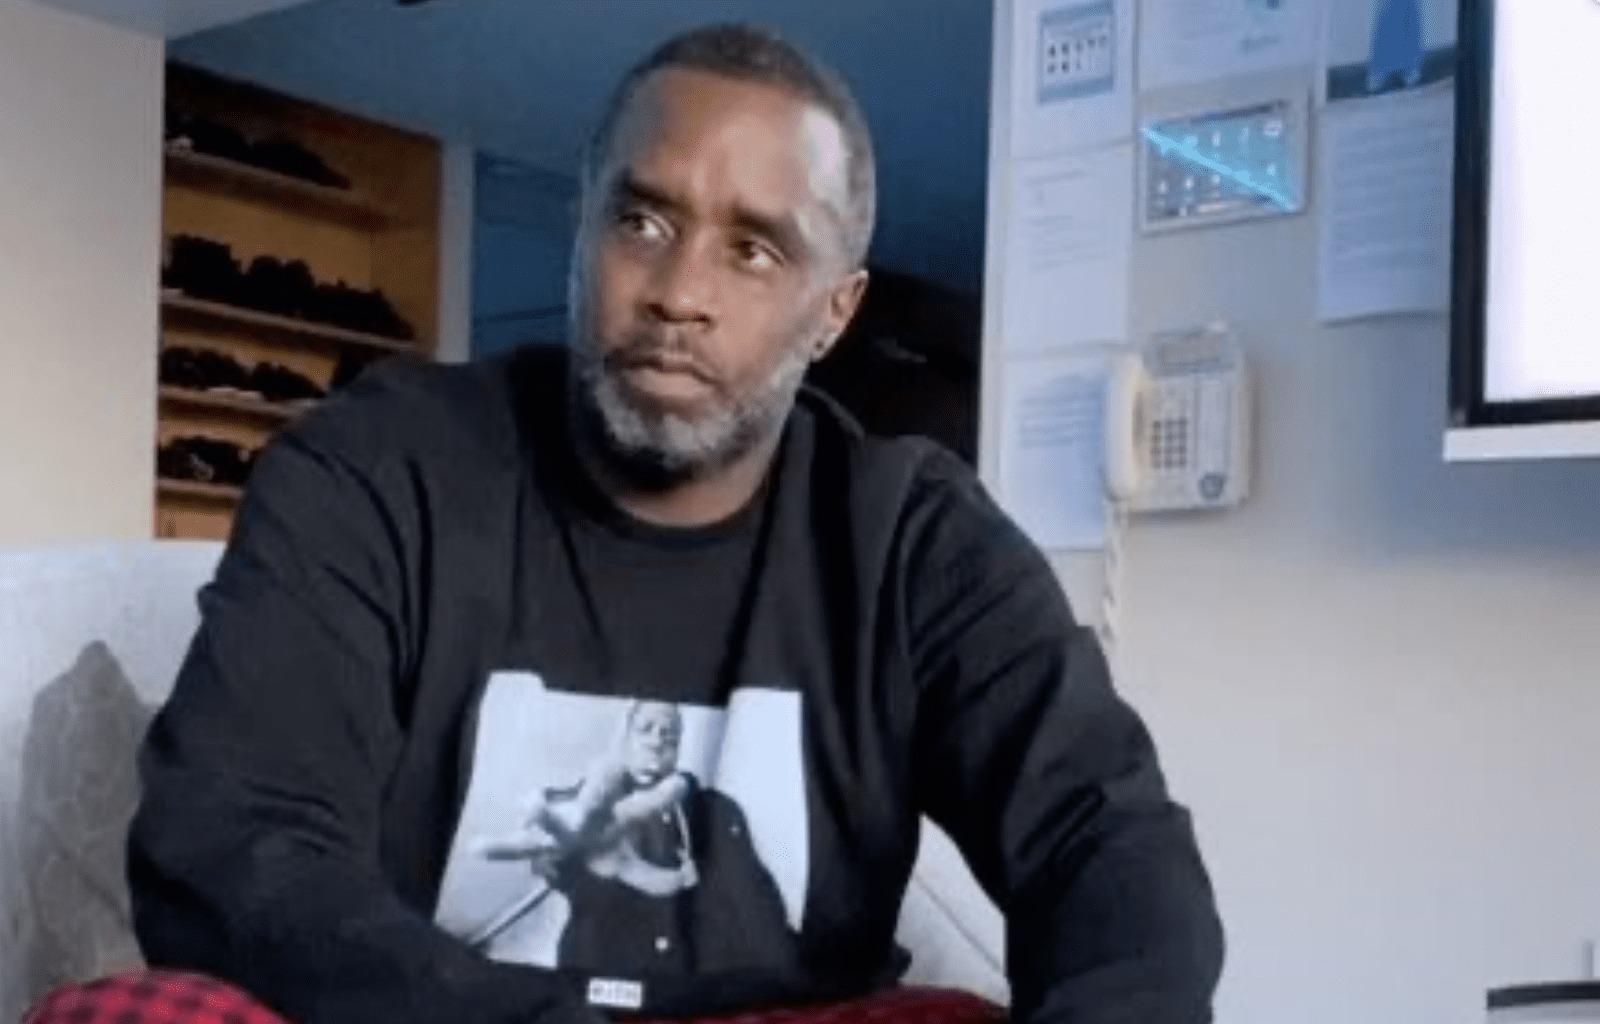 Diddy Shares A Terrifying Video About The System In America